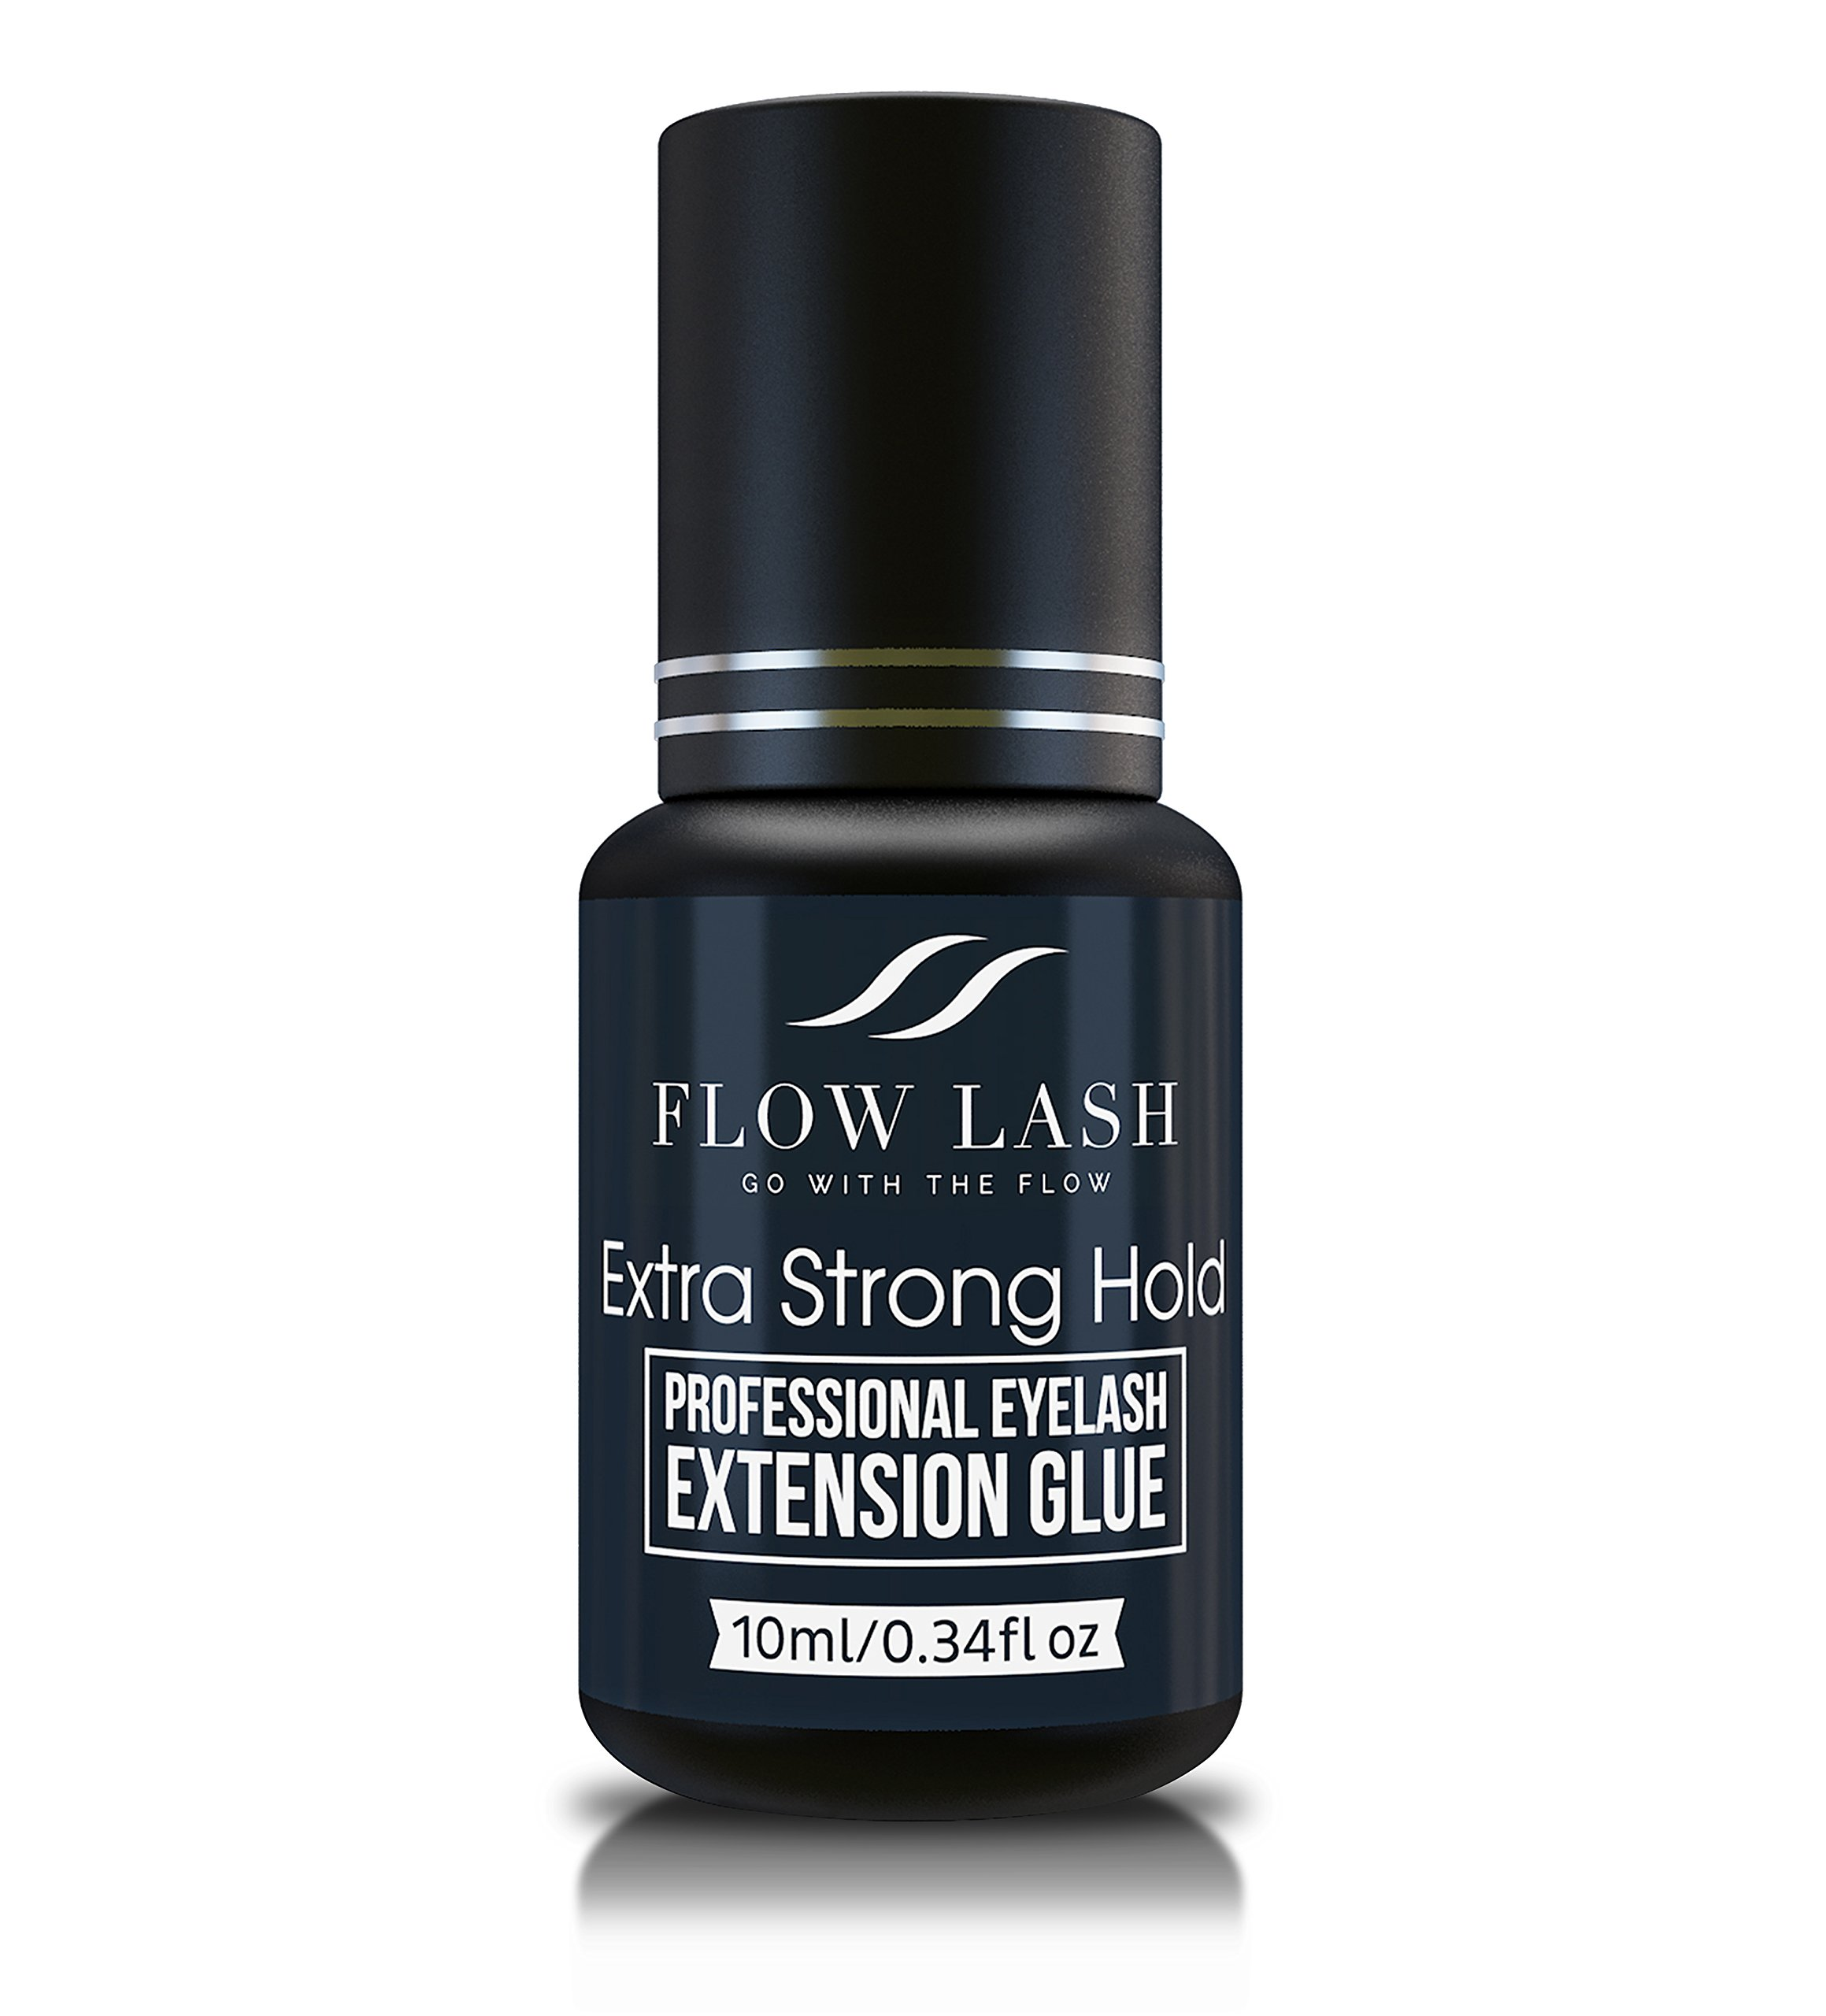 Professional Eyelash Extension Glue - Extra Strong Hold, Long Lasting, Quick Dry Time - Premium Professional Grade Adhesive, Formaldehyde & Latex Free - 10ml by Flow Lash by Flow Lash (Image #1)